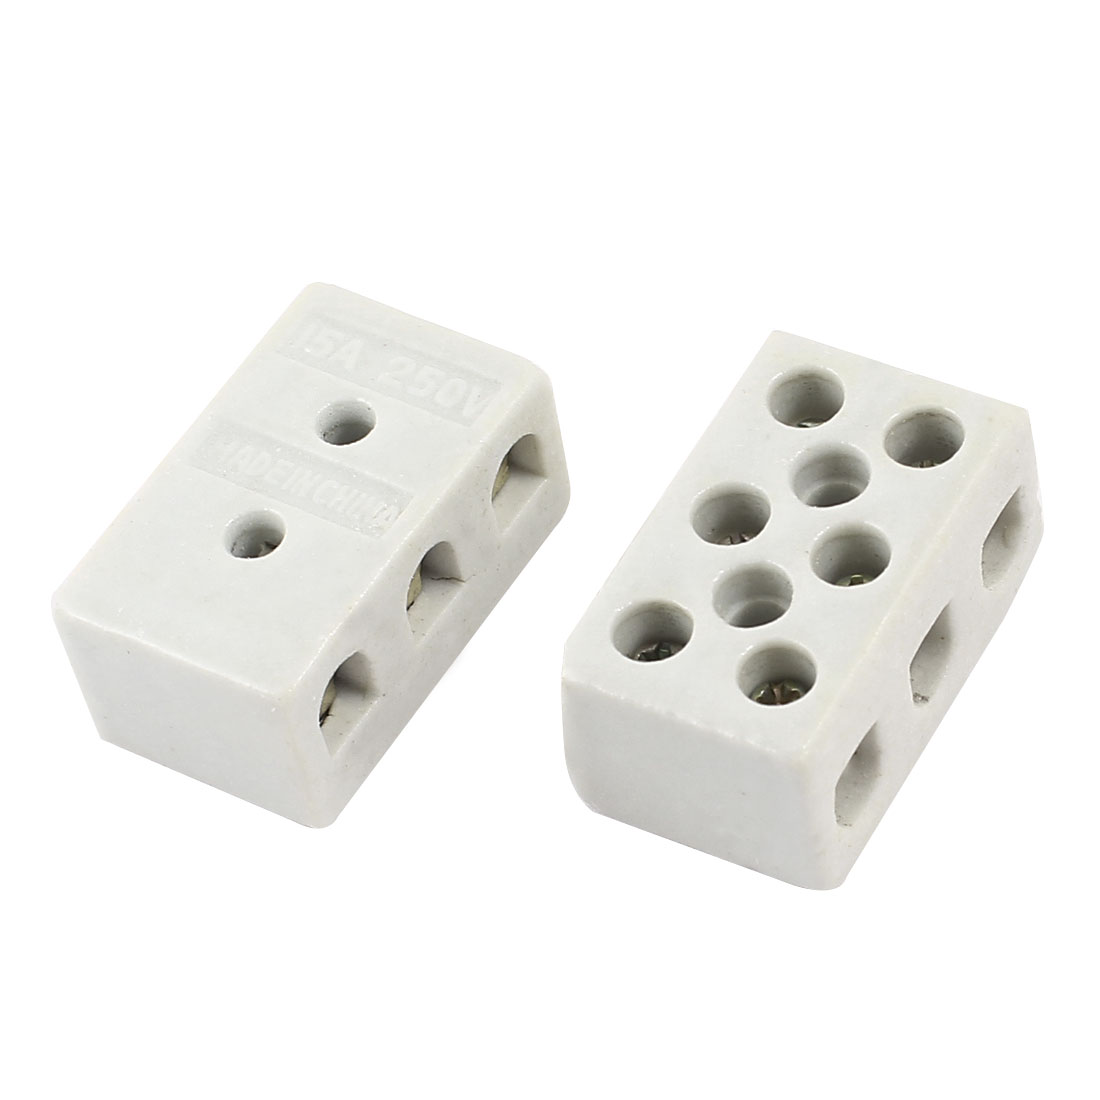 2 Pcs 8 Hole 2W8H High Temperature Resistant Ceramic Terminal Block 15A 250V